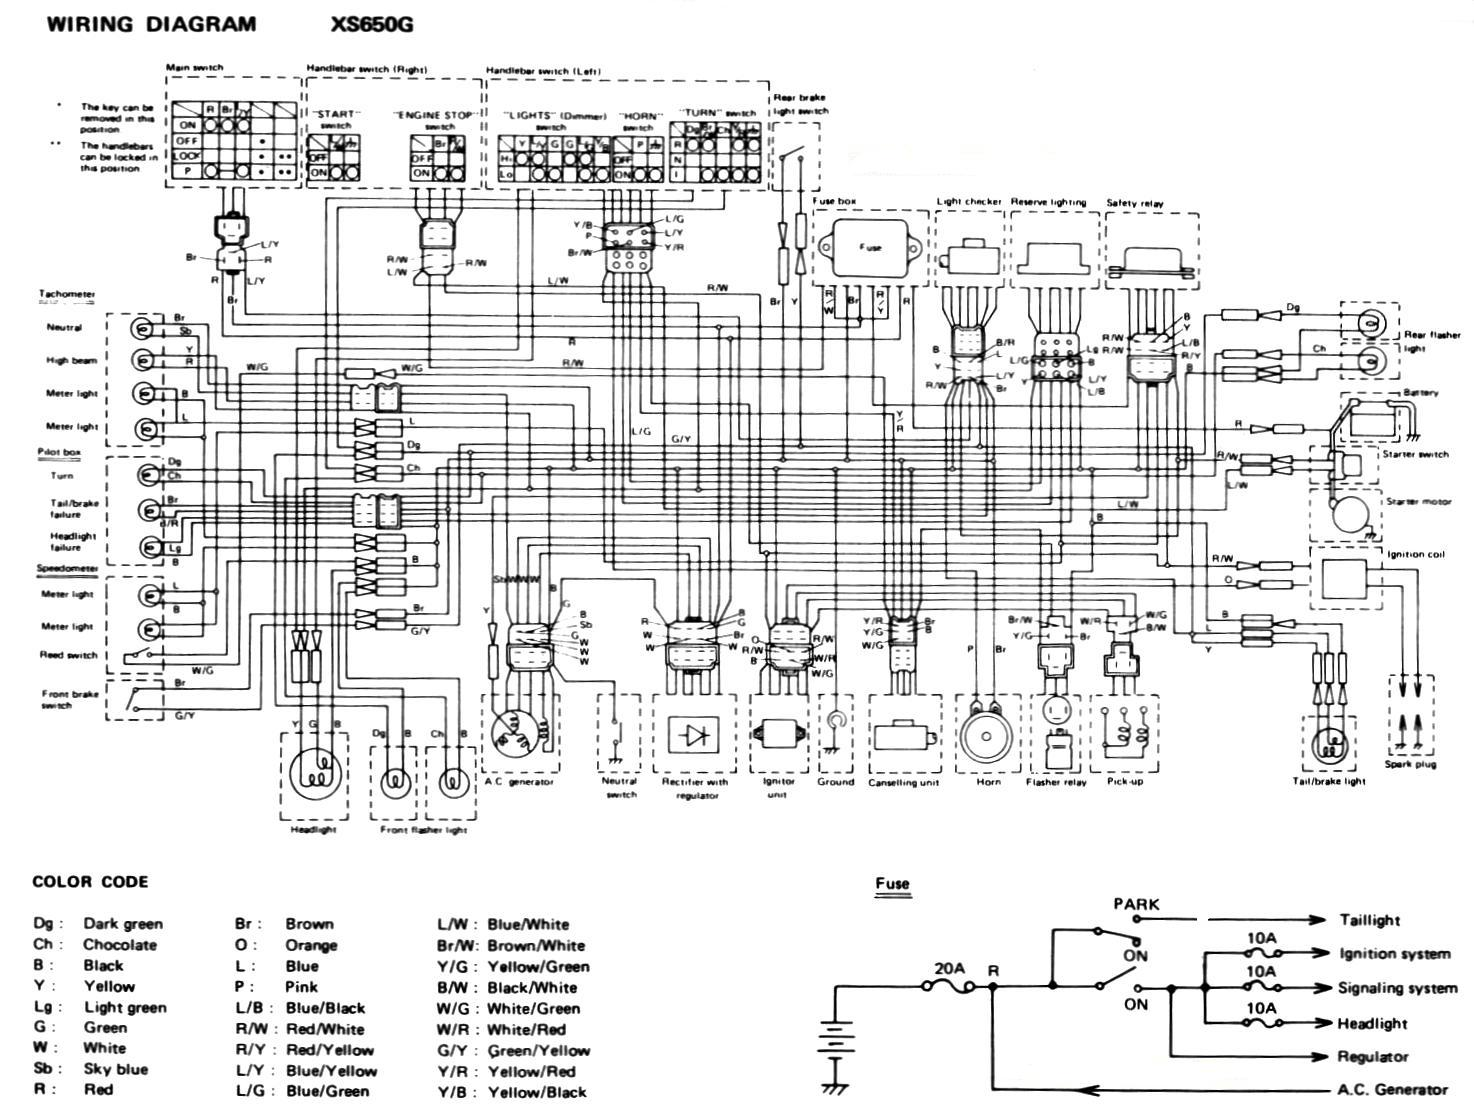 Wiring Diagrams | Gs1000 Wiring Diagram |  | Oregon Motorcycle Parts